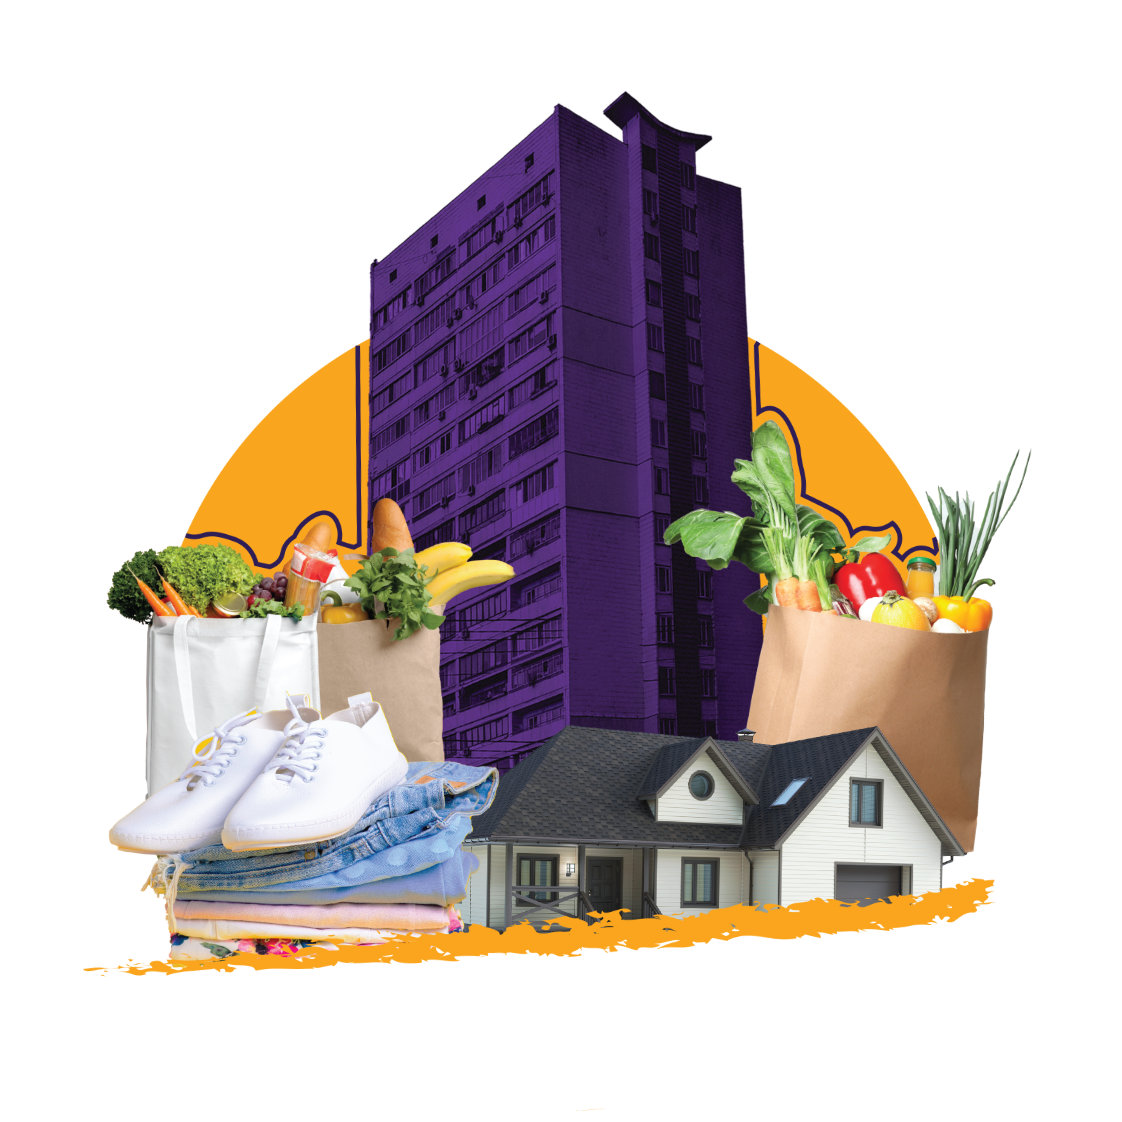 apartment and groceries